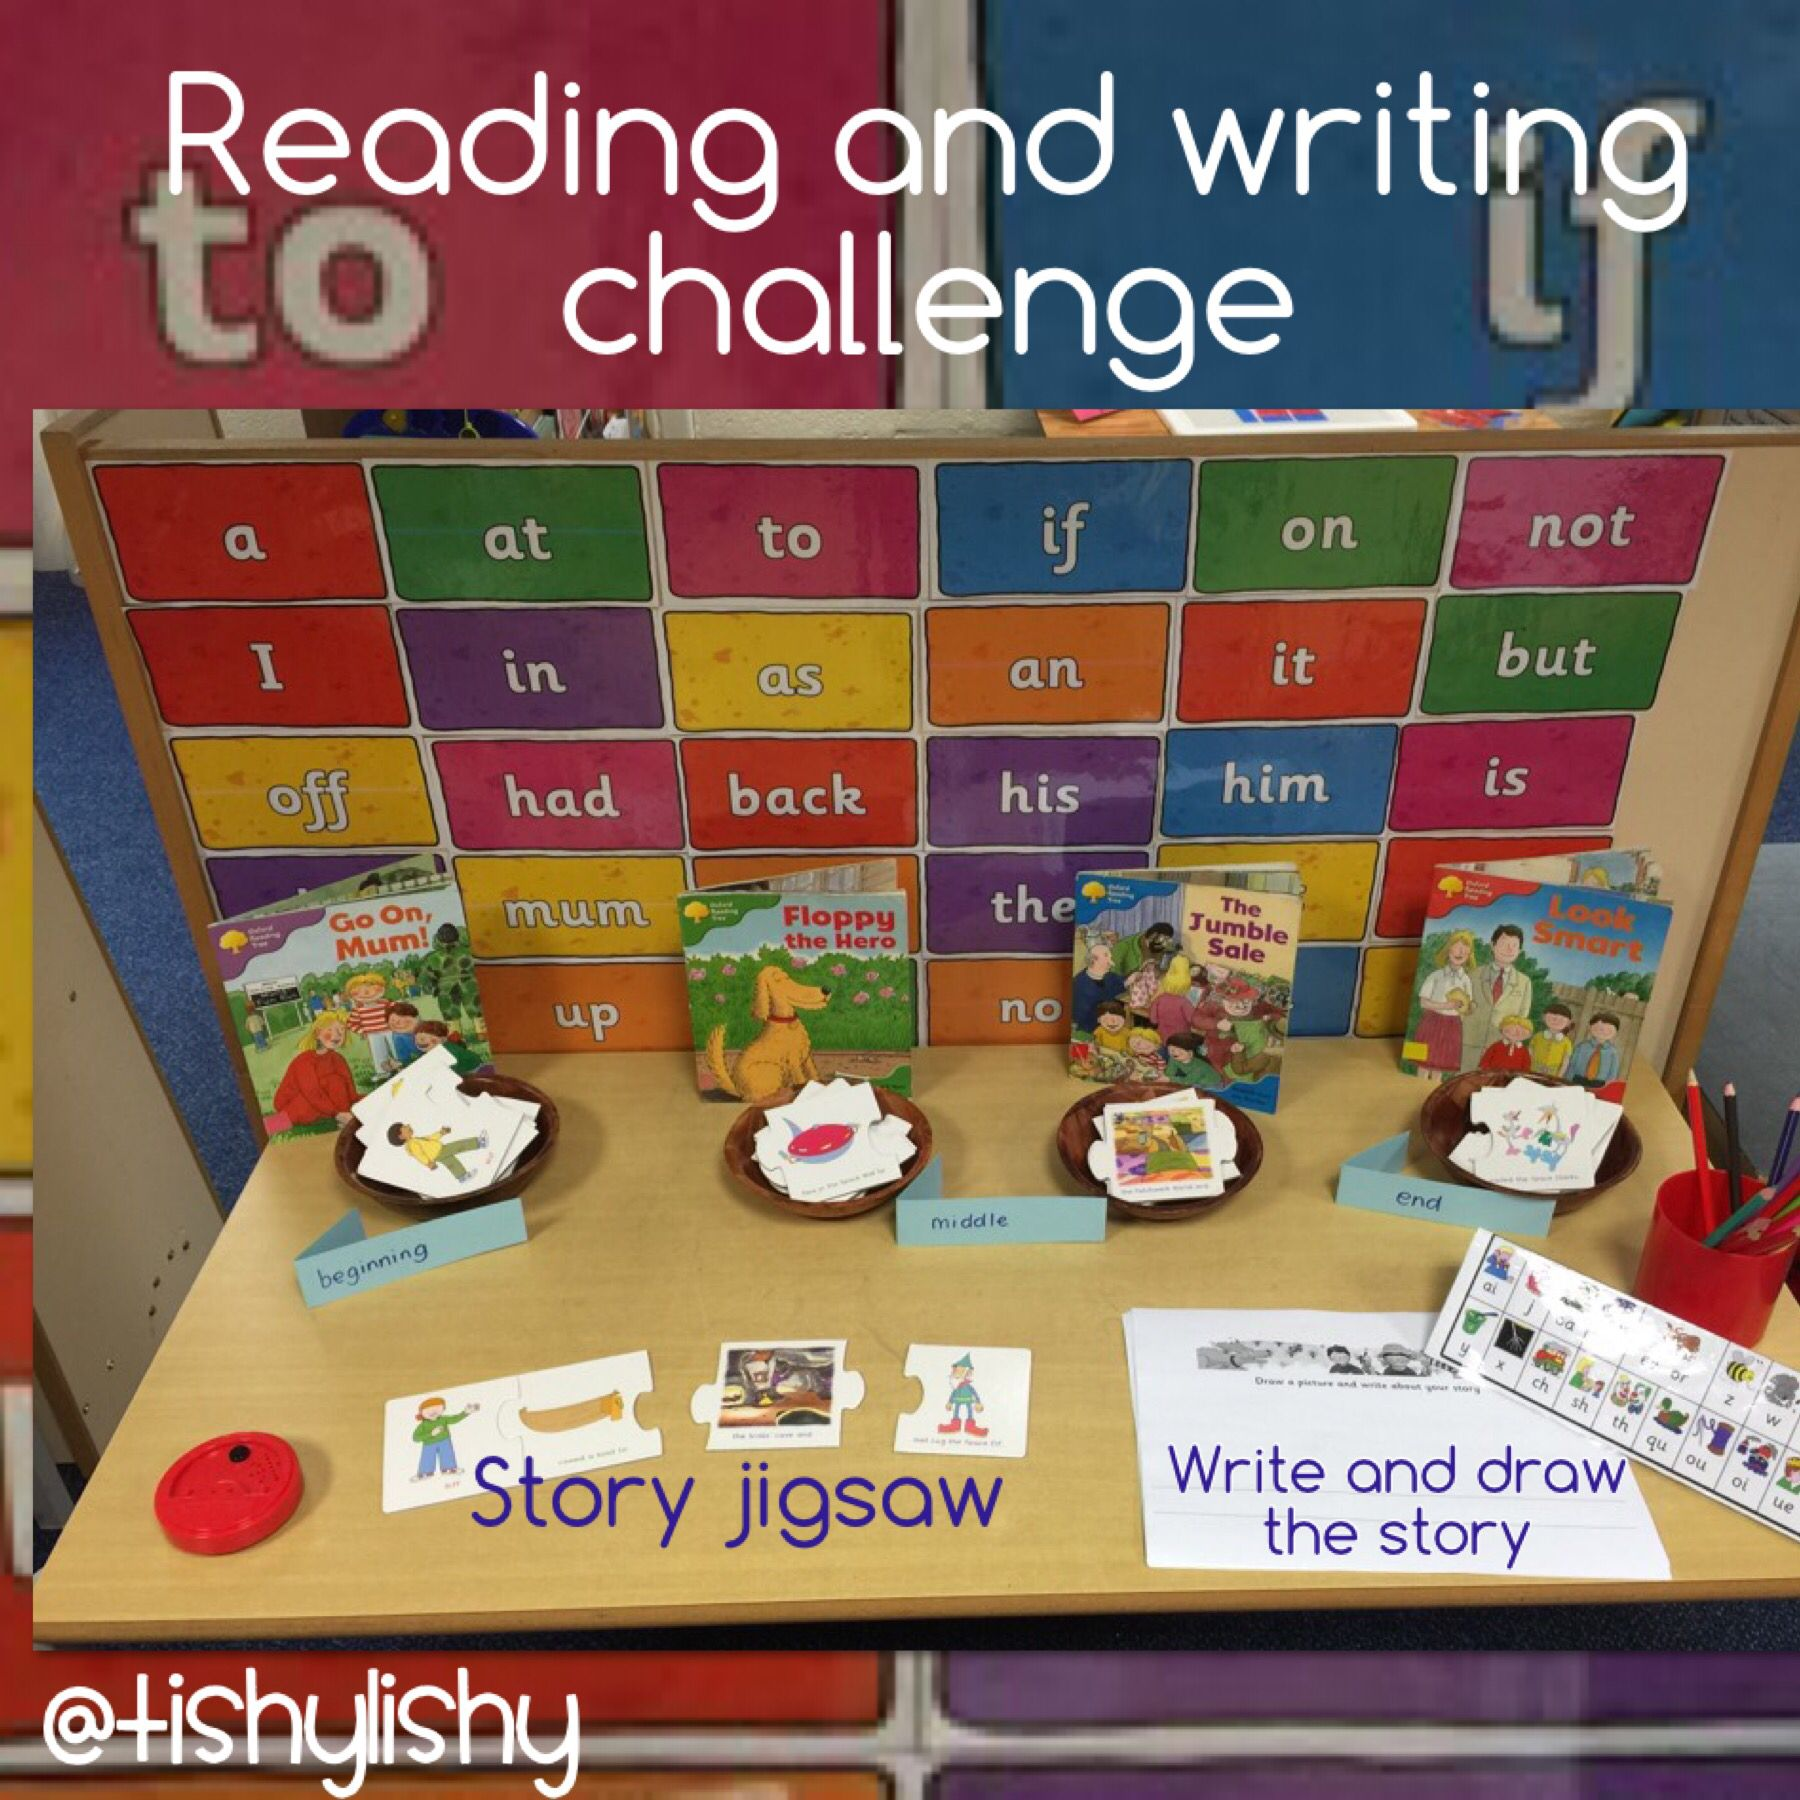 Reading And Writing Challenge Use Jigsaw Pieces To Make A Story Draw And Write About It